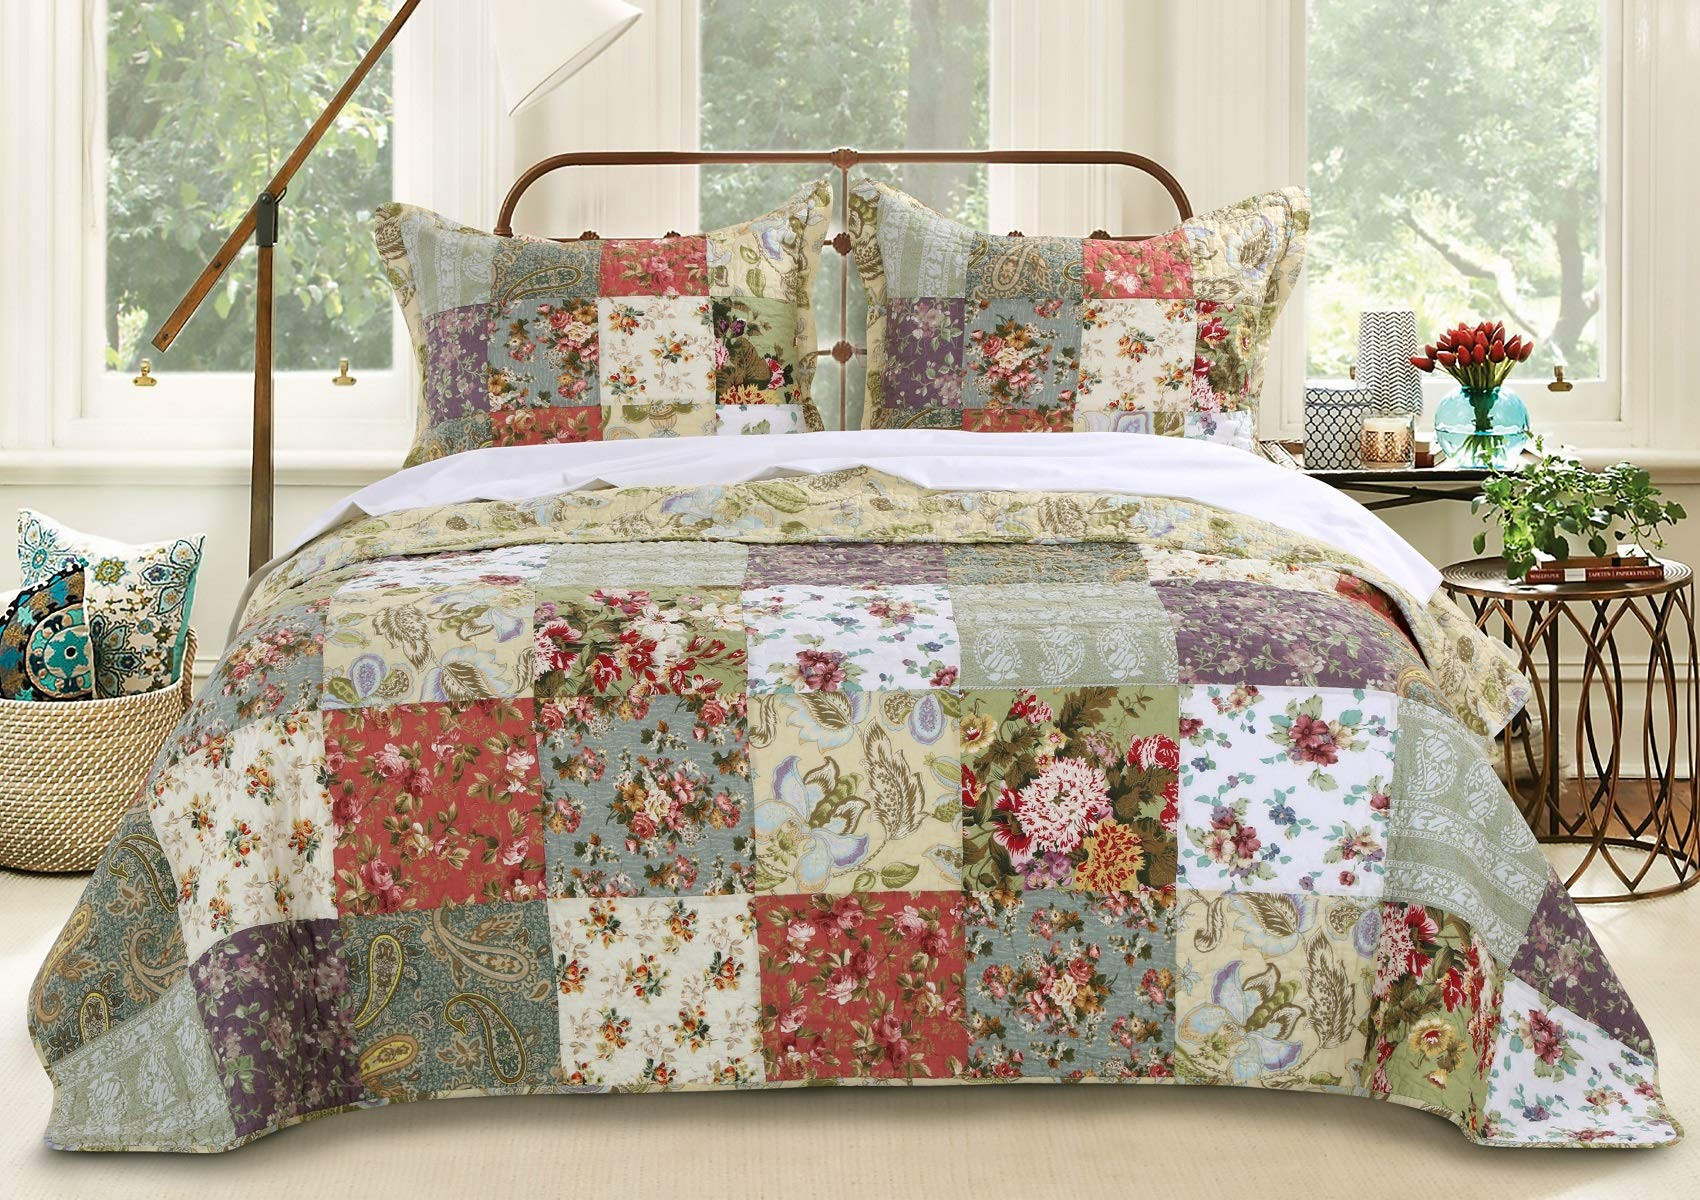 Greenland Home Blooming Prairie King 3-Piece Bedspread Set by Greenland Home